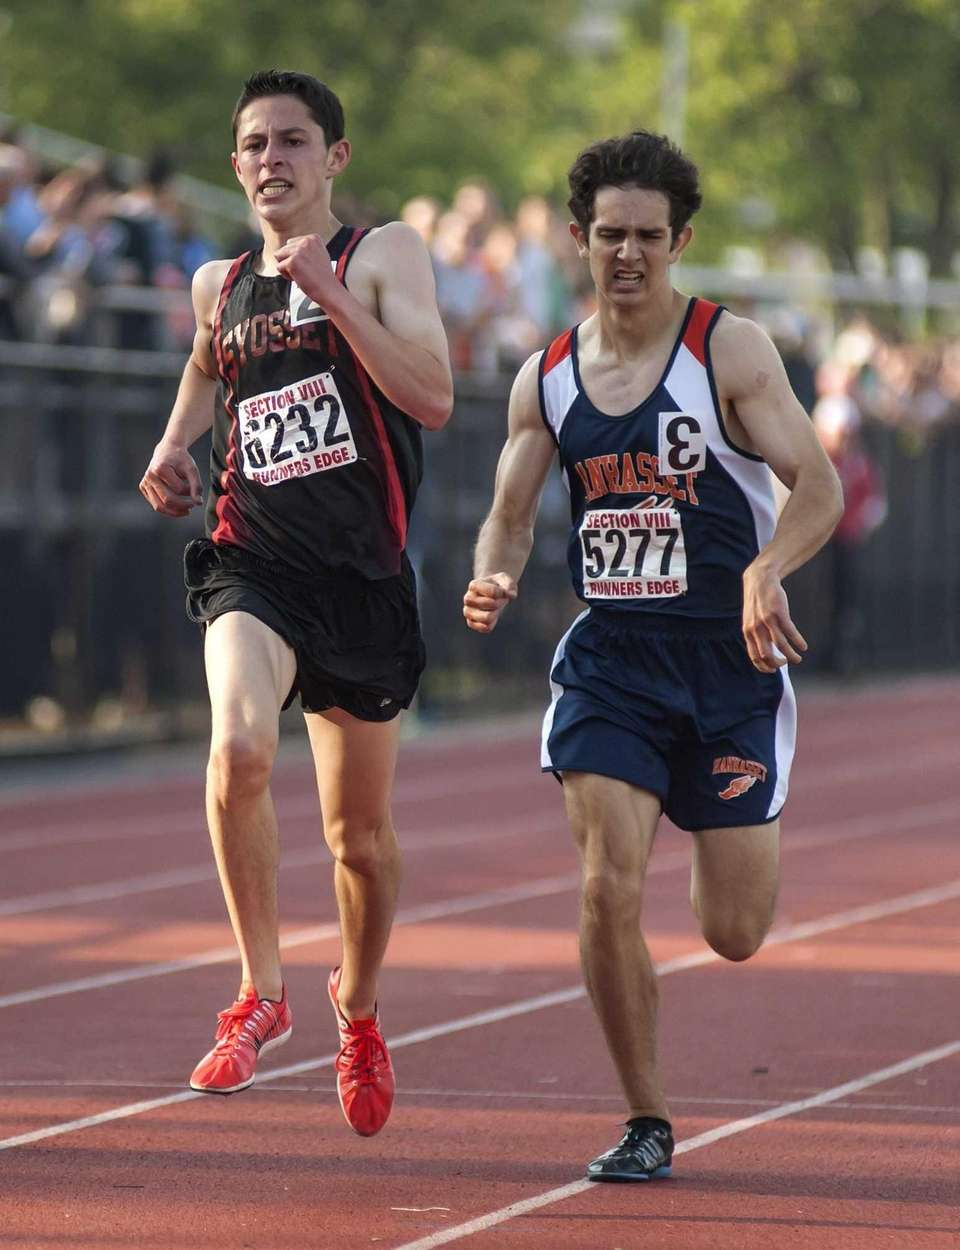 Syosset's Ryan DePinto, left, beats out Manhasset's Stephen